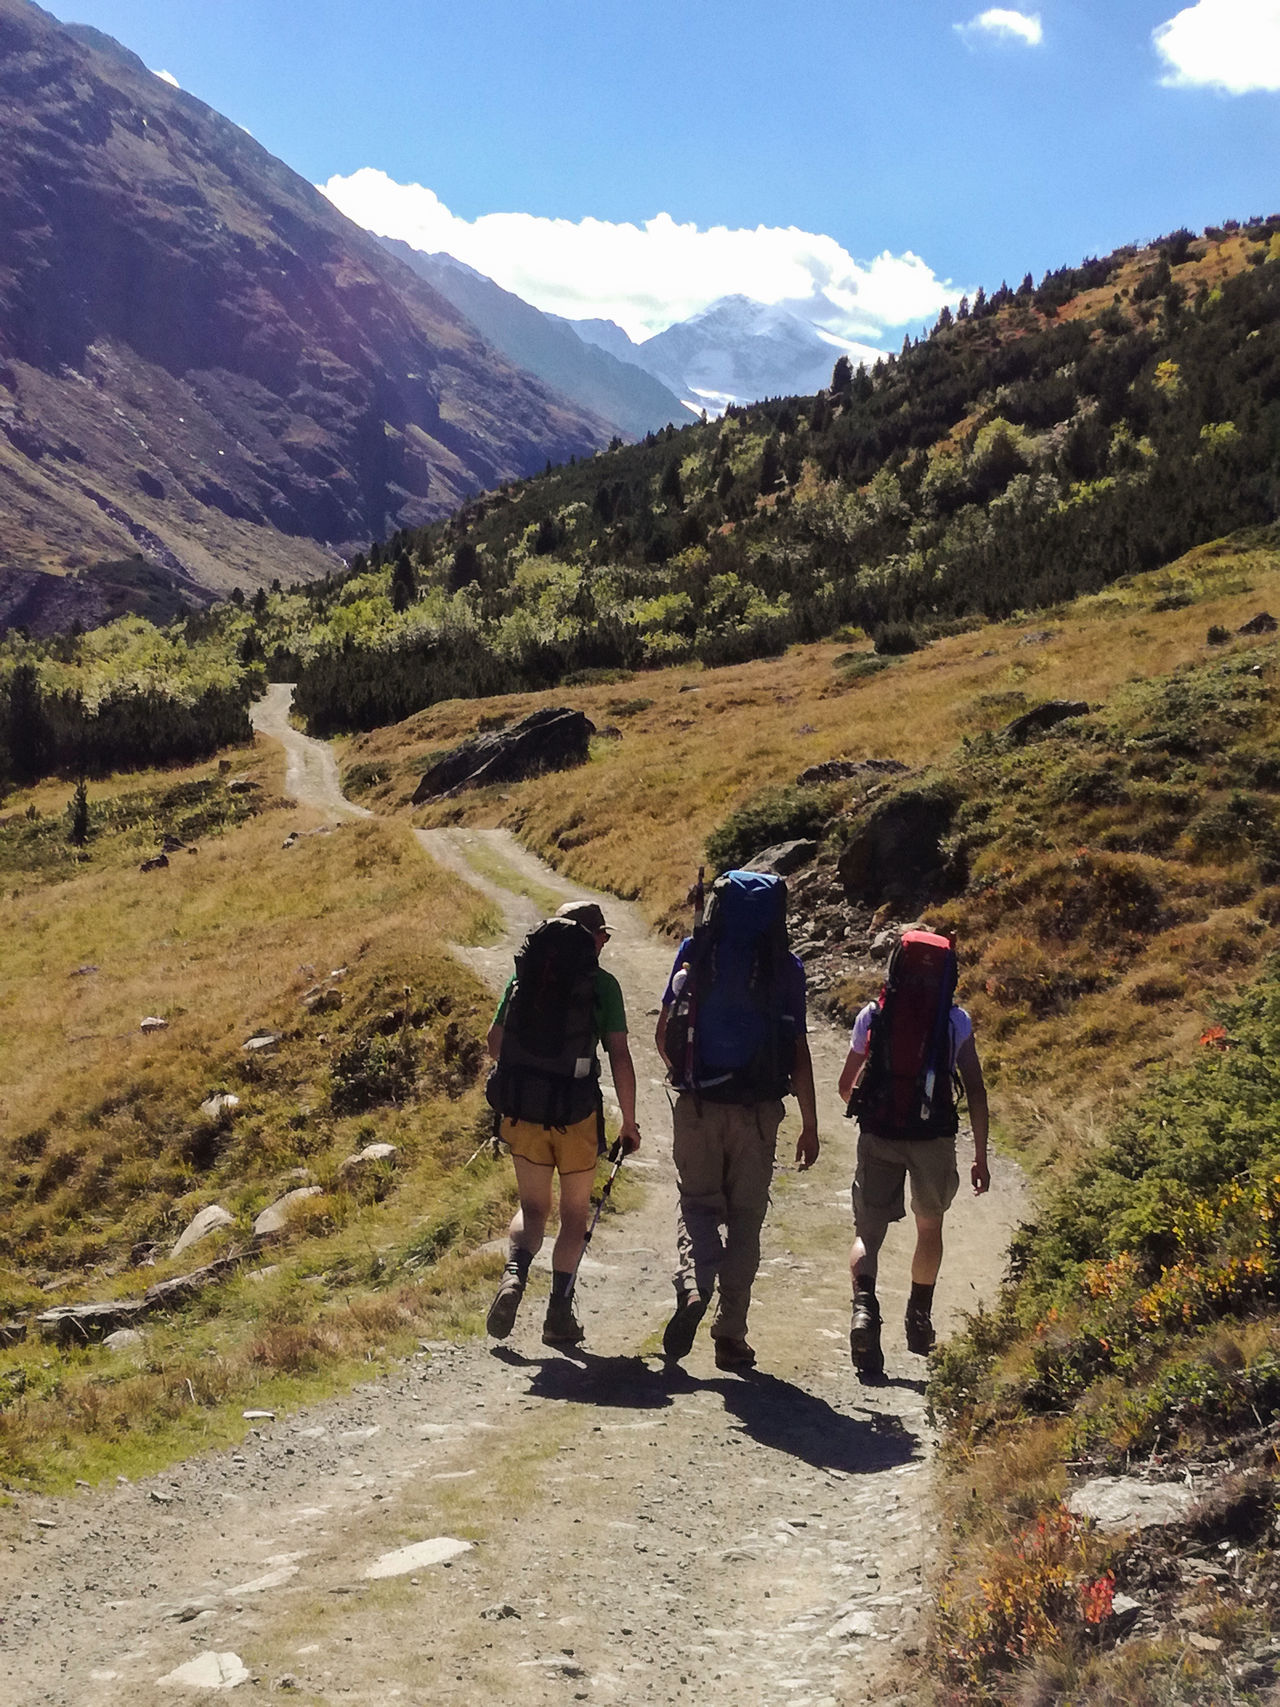 Group of hikers Adventure Backpack Beauty In Nature Day Full Length Grass Hiking Hiking Hikingadventures Landscape Lifestyles Men Mountain Mountain Range Nature Outdoor Outdoors People Real People Rear View Scenics Sky Sunlight The Great Outdoors - 2017 EyeEm Awards Togetherness